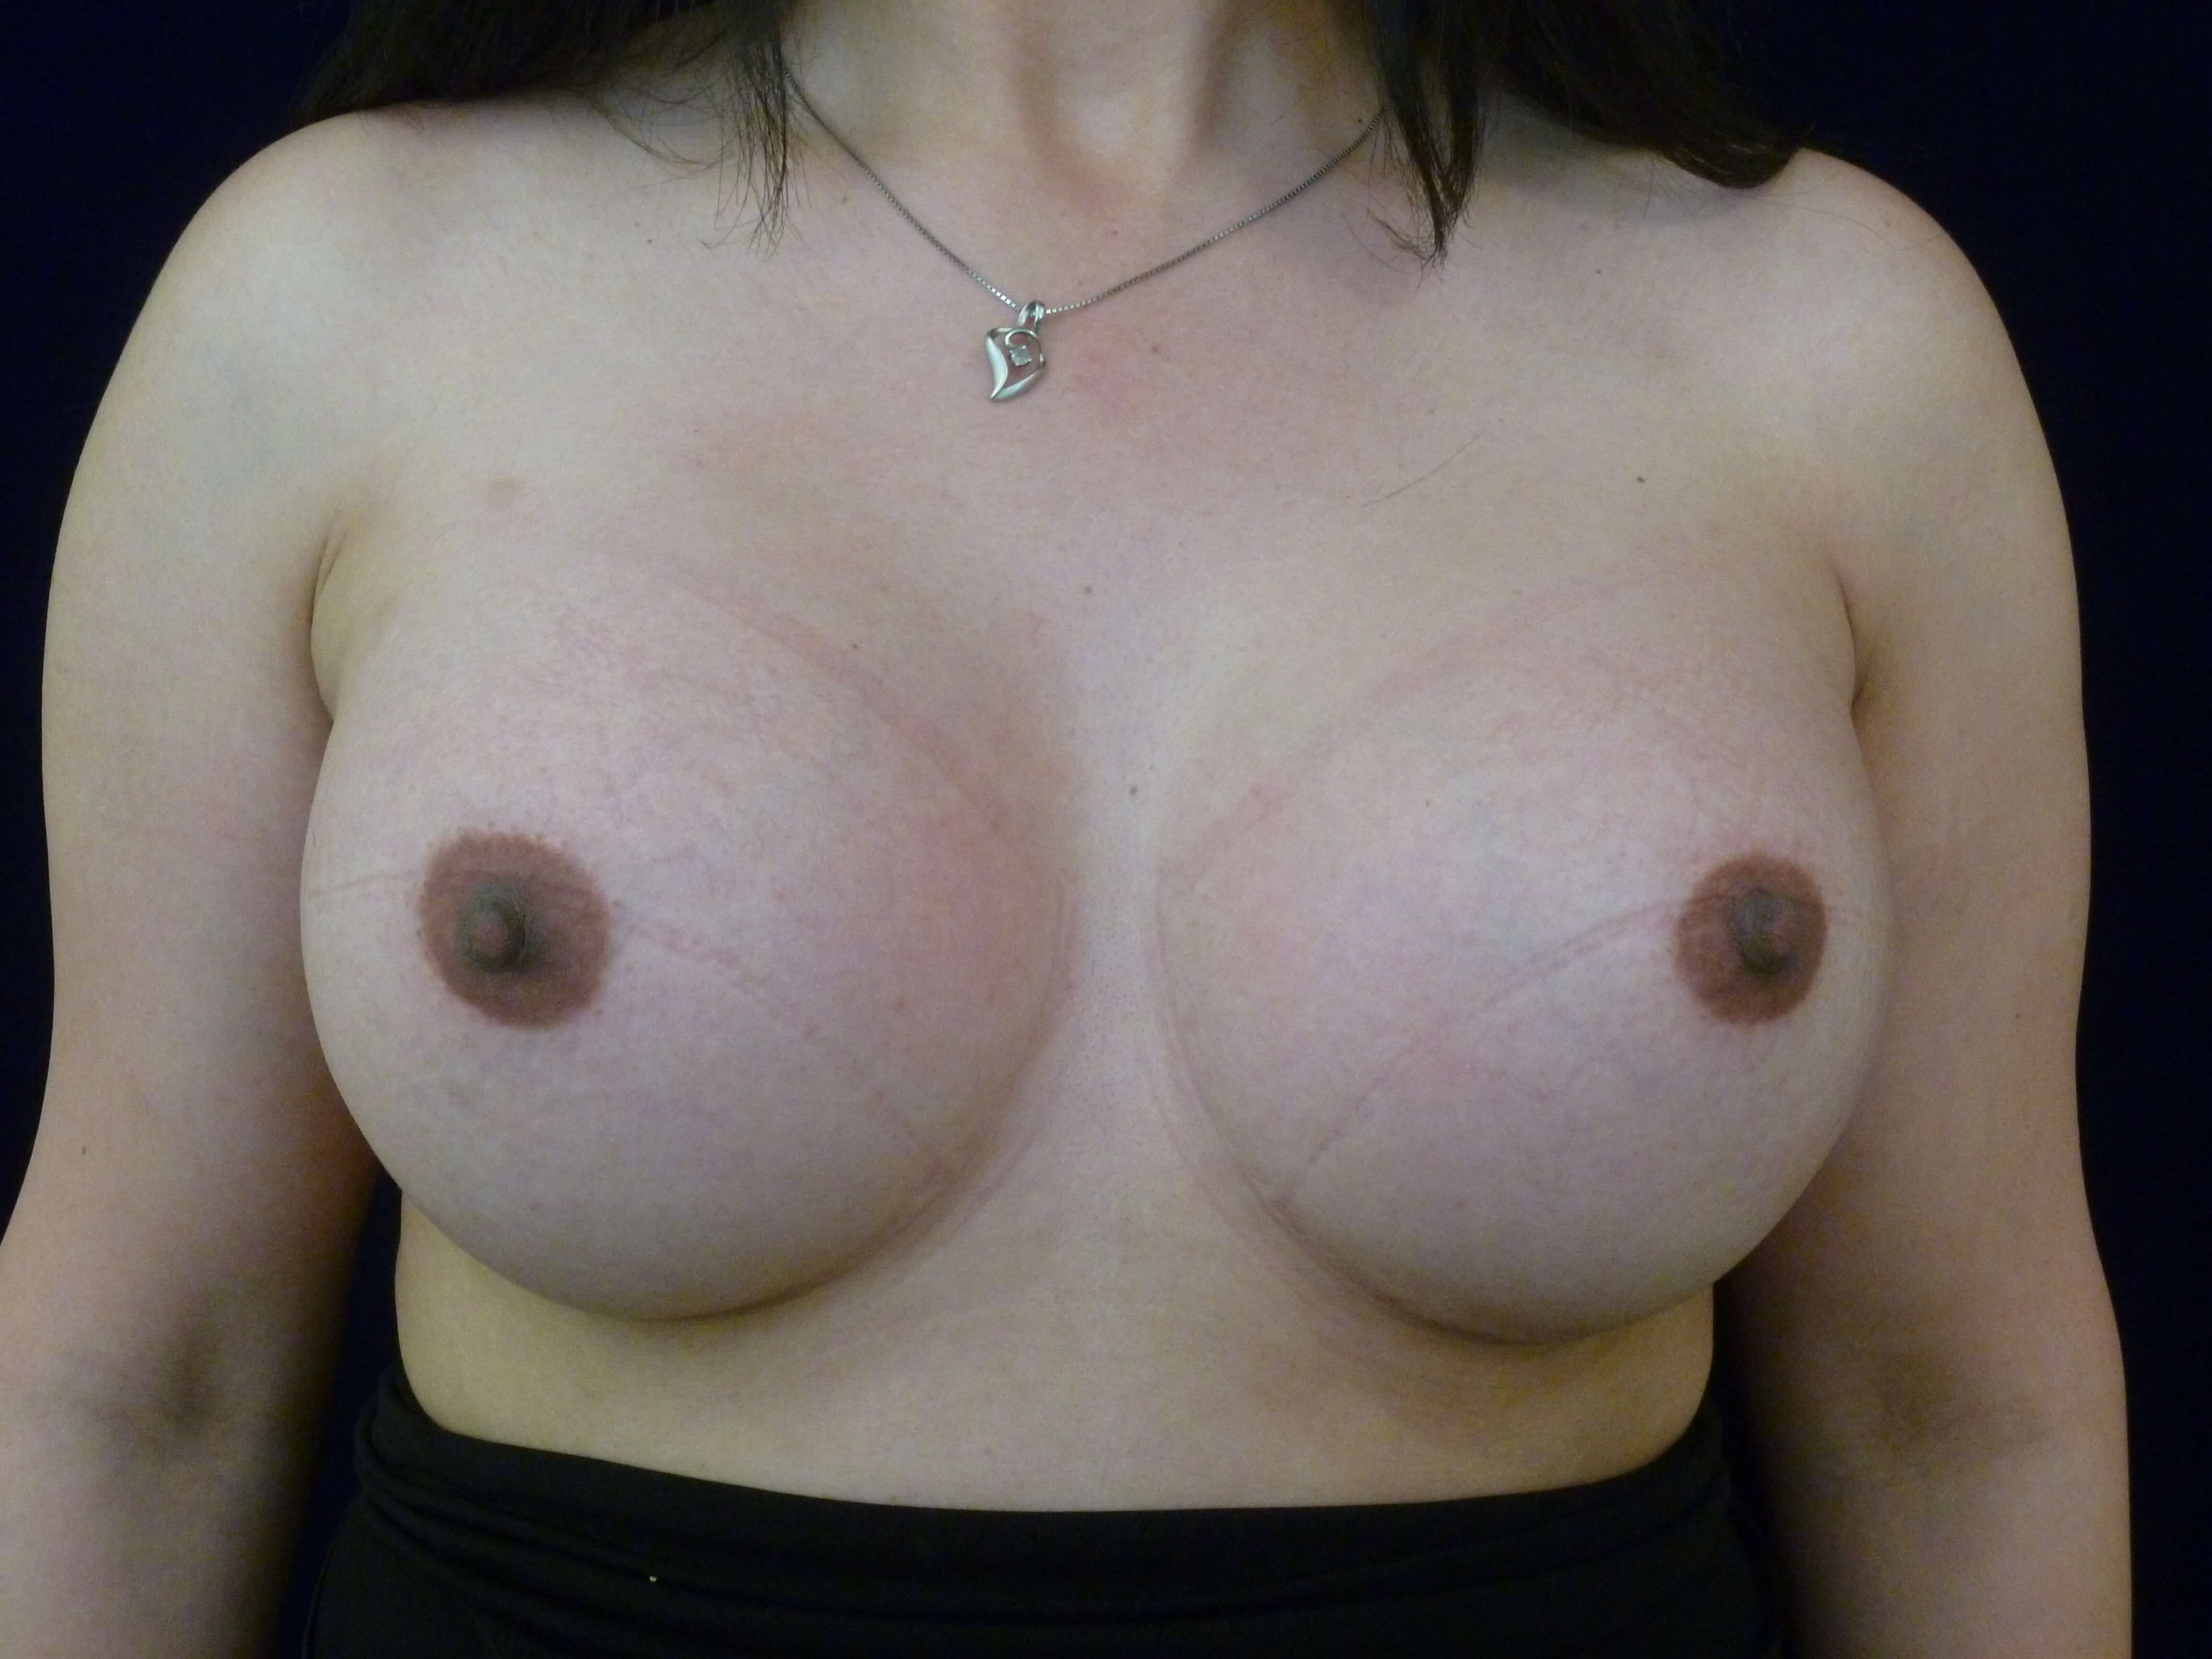 Breast Revision Surgery After Breast Revision